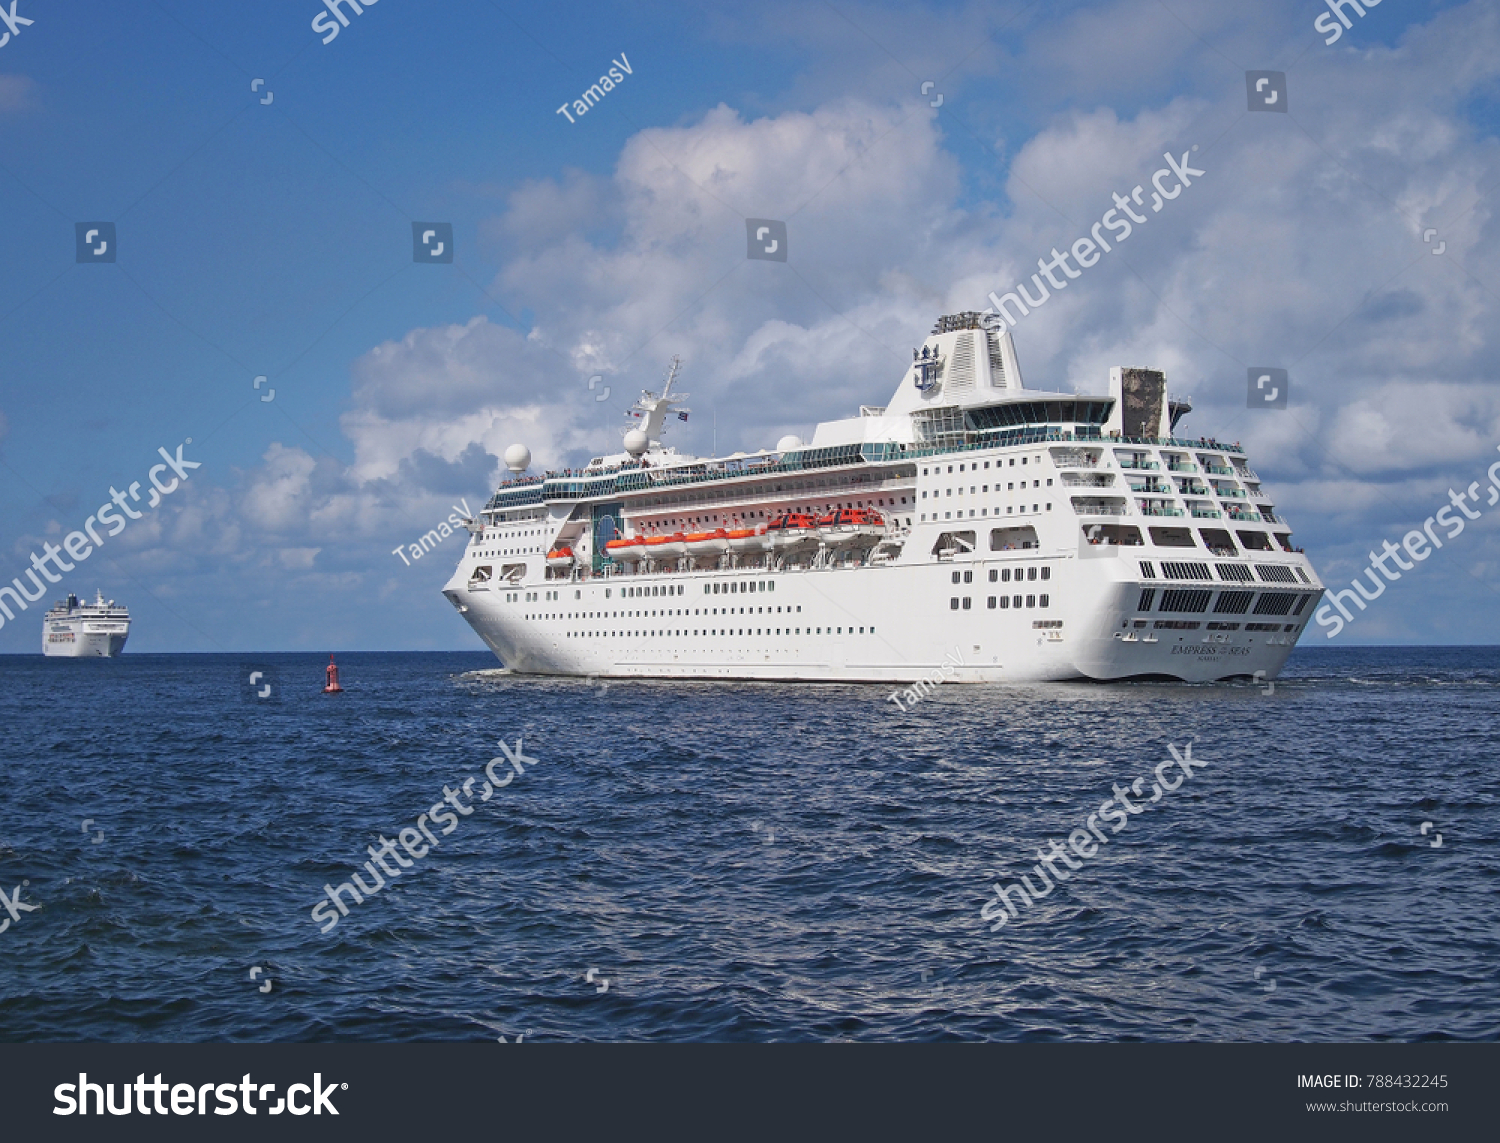 Havana Cuba December Royal Stock Photo - Empress of the seas cruise ship